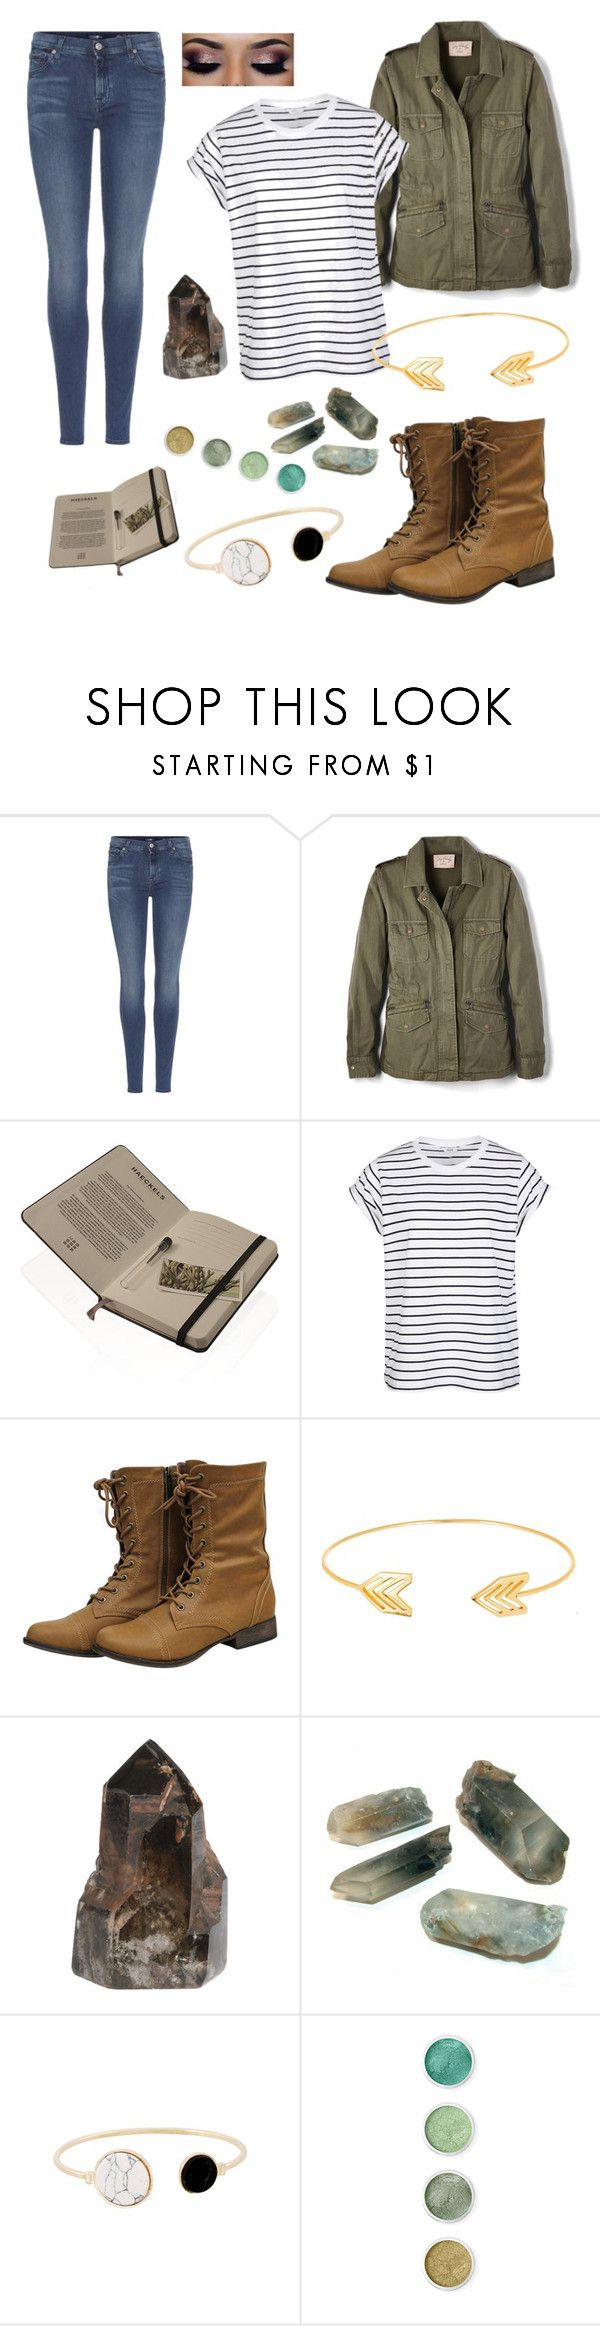 """""""One with nature"""" by switchkid ❤ liked on Polyvore featuring 7 For All Mankind, Velvet by Graham & Spencer, Haeckels, Lord & Taylor and Terre Mère"""